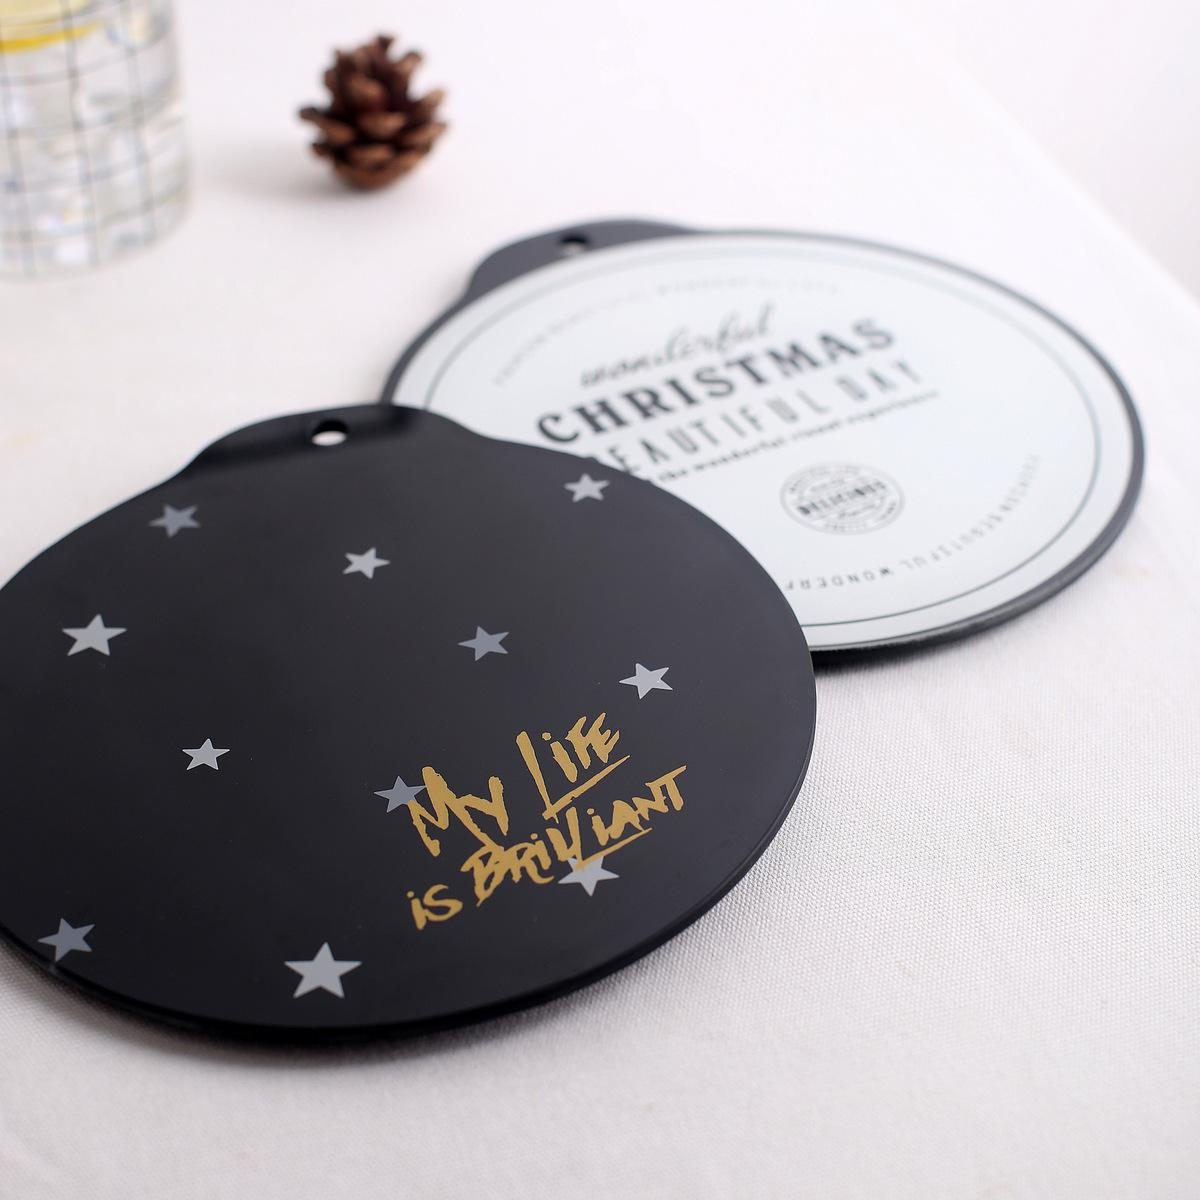 Luxury Black White Letter Star Tempered Glass Drink Coaster Coffee Cup Mat Tea Pad - Round Dining Placemats Home Decor